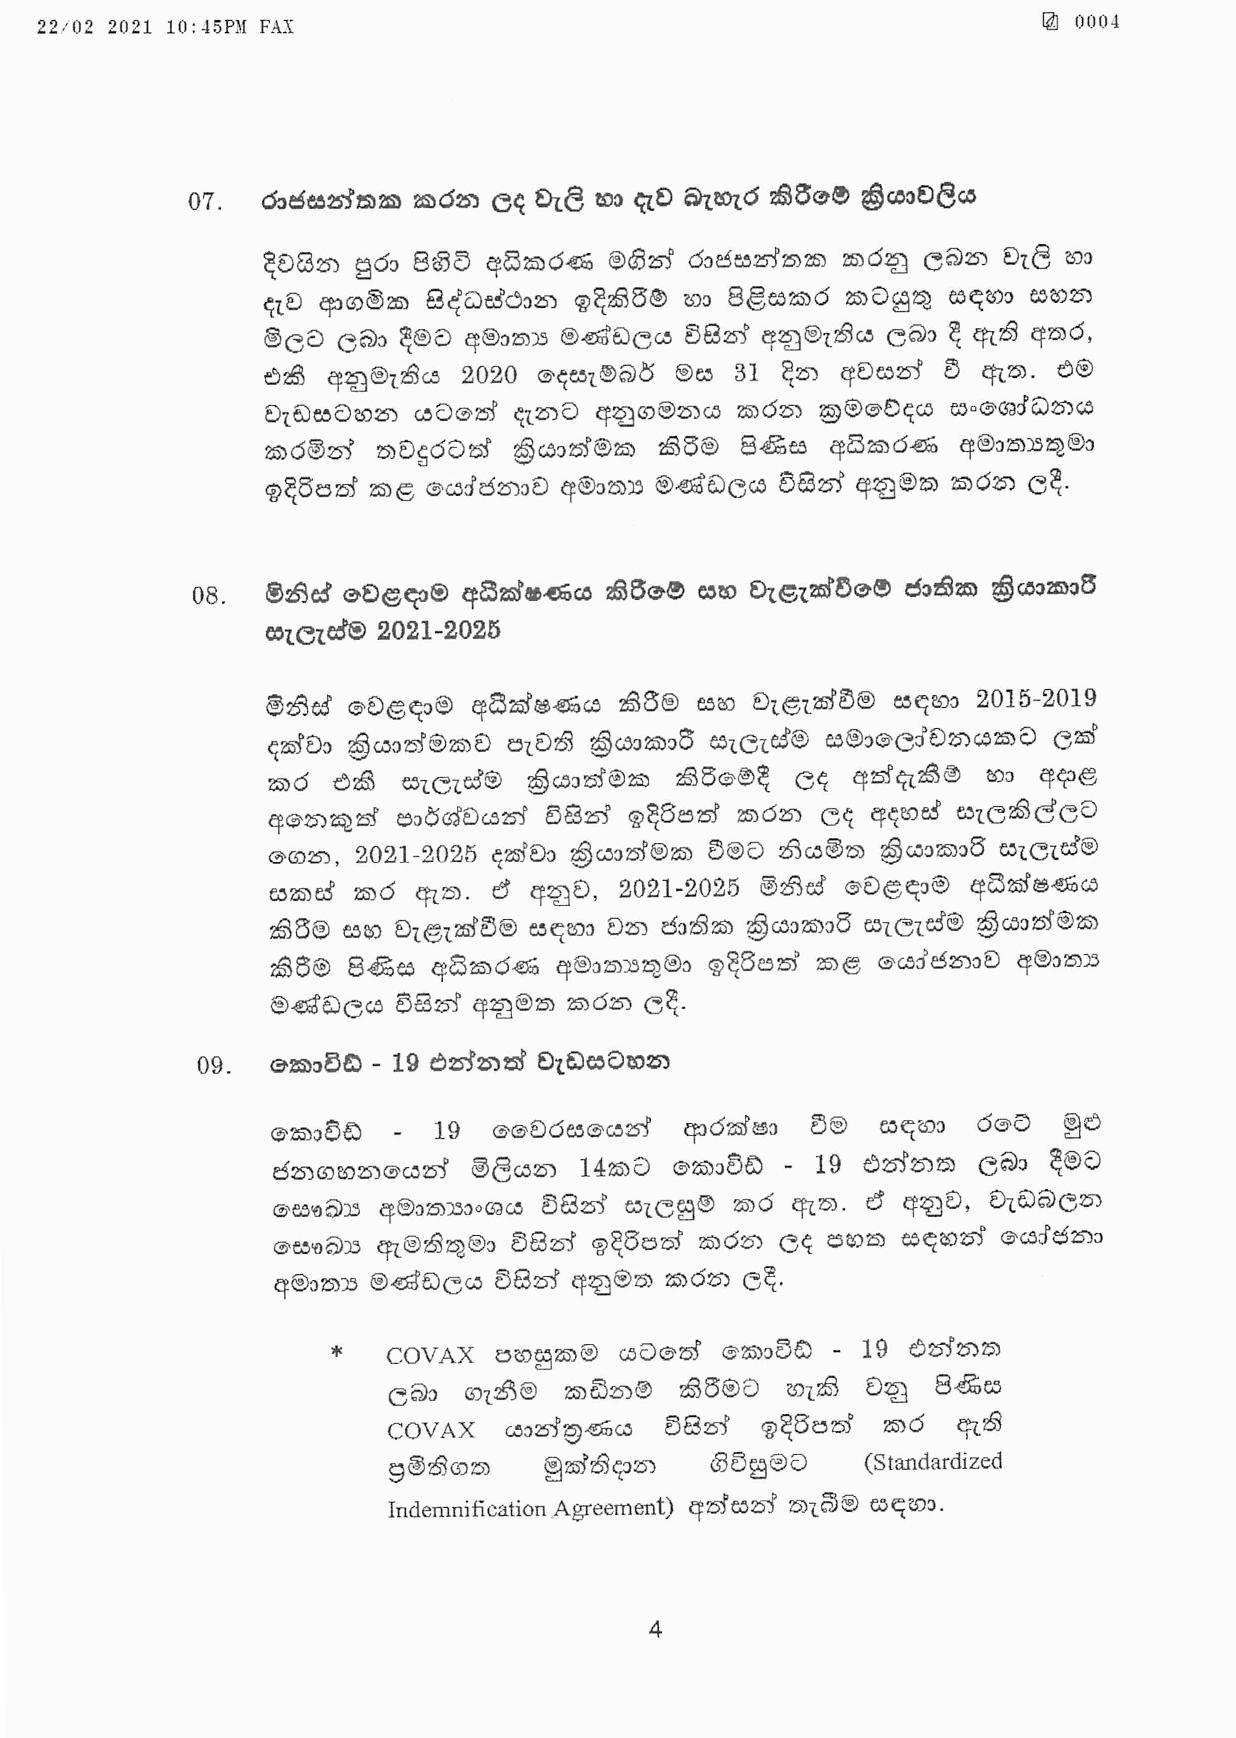 Cabinet Decision on 22.02.2021 page 004